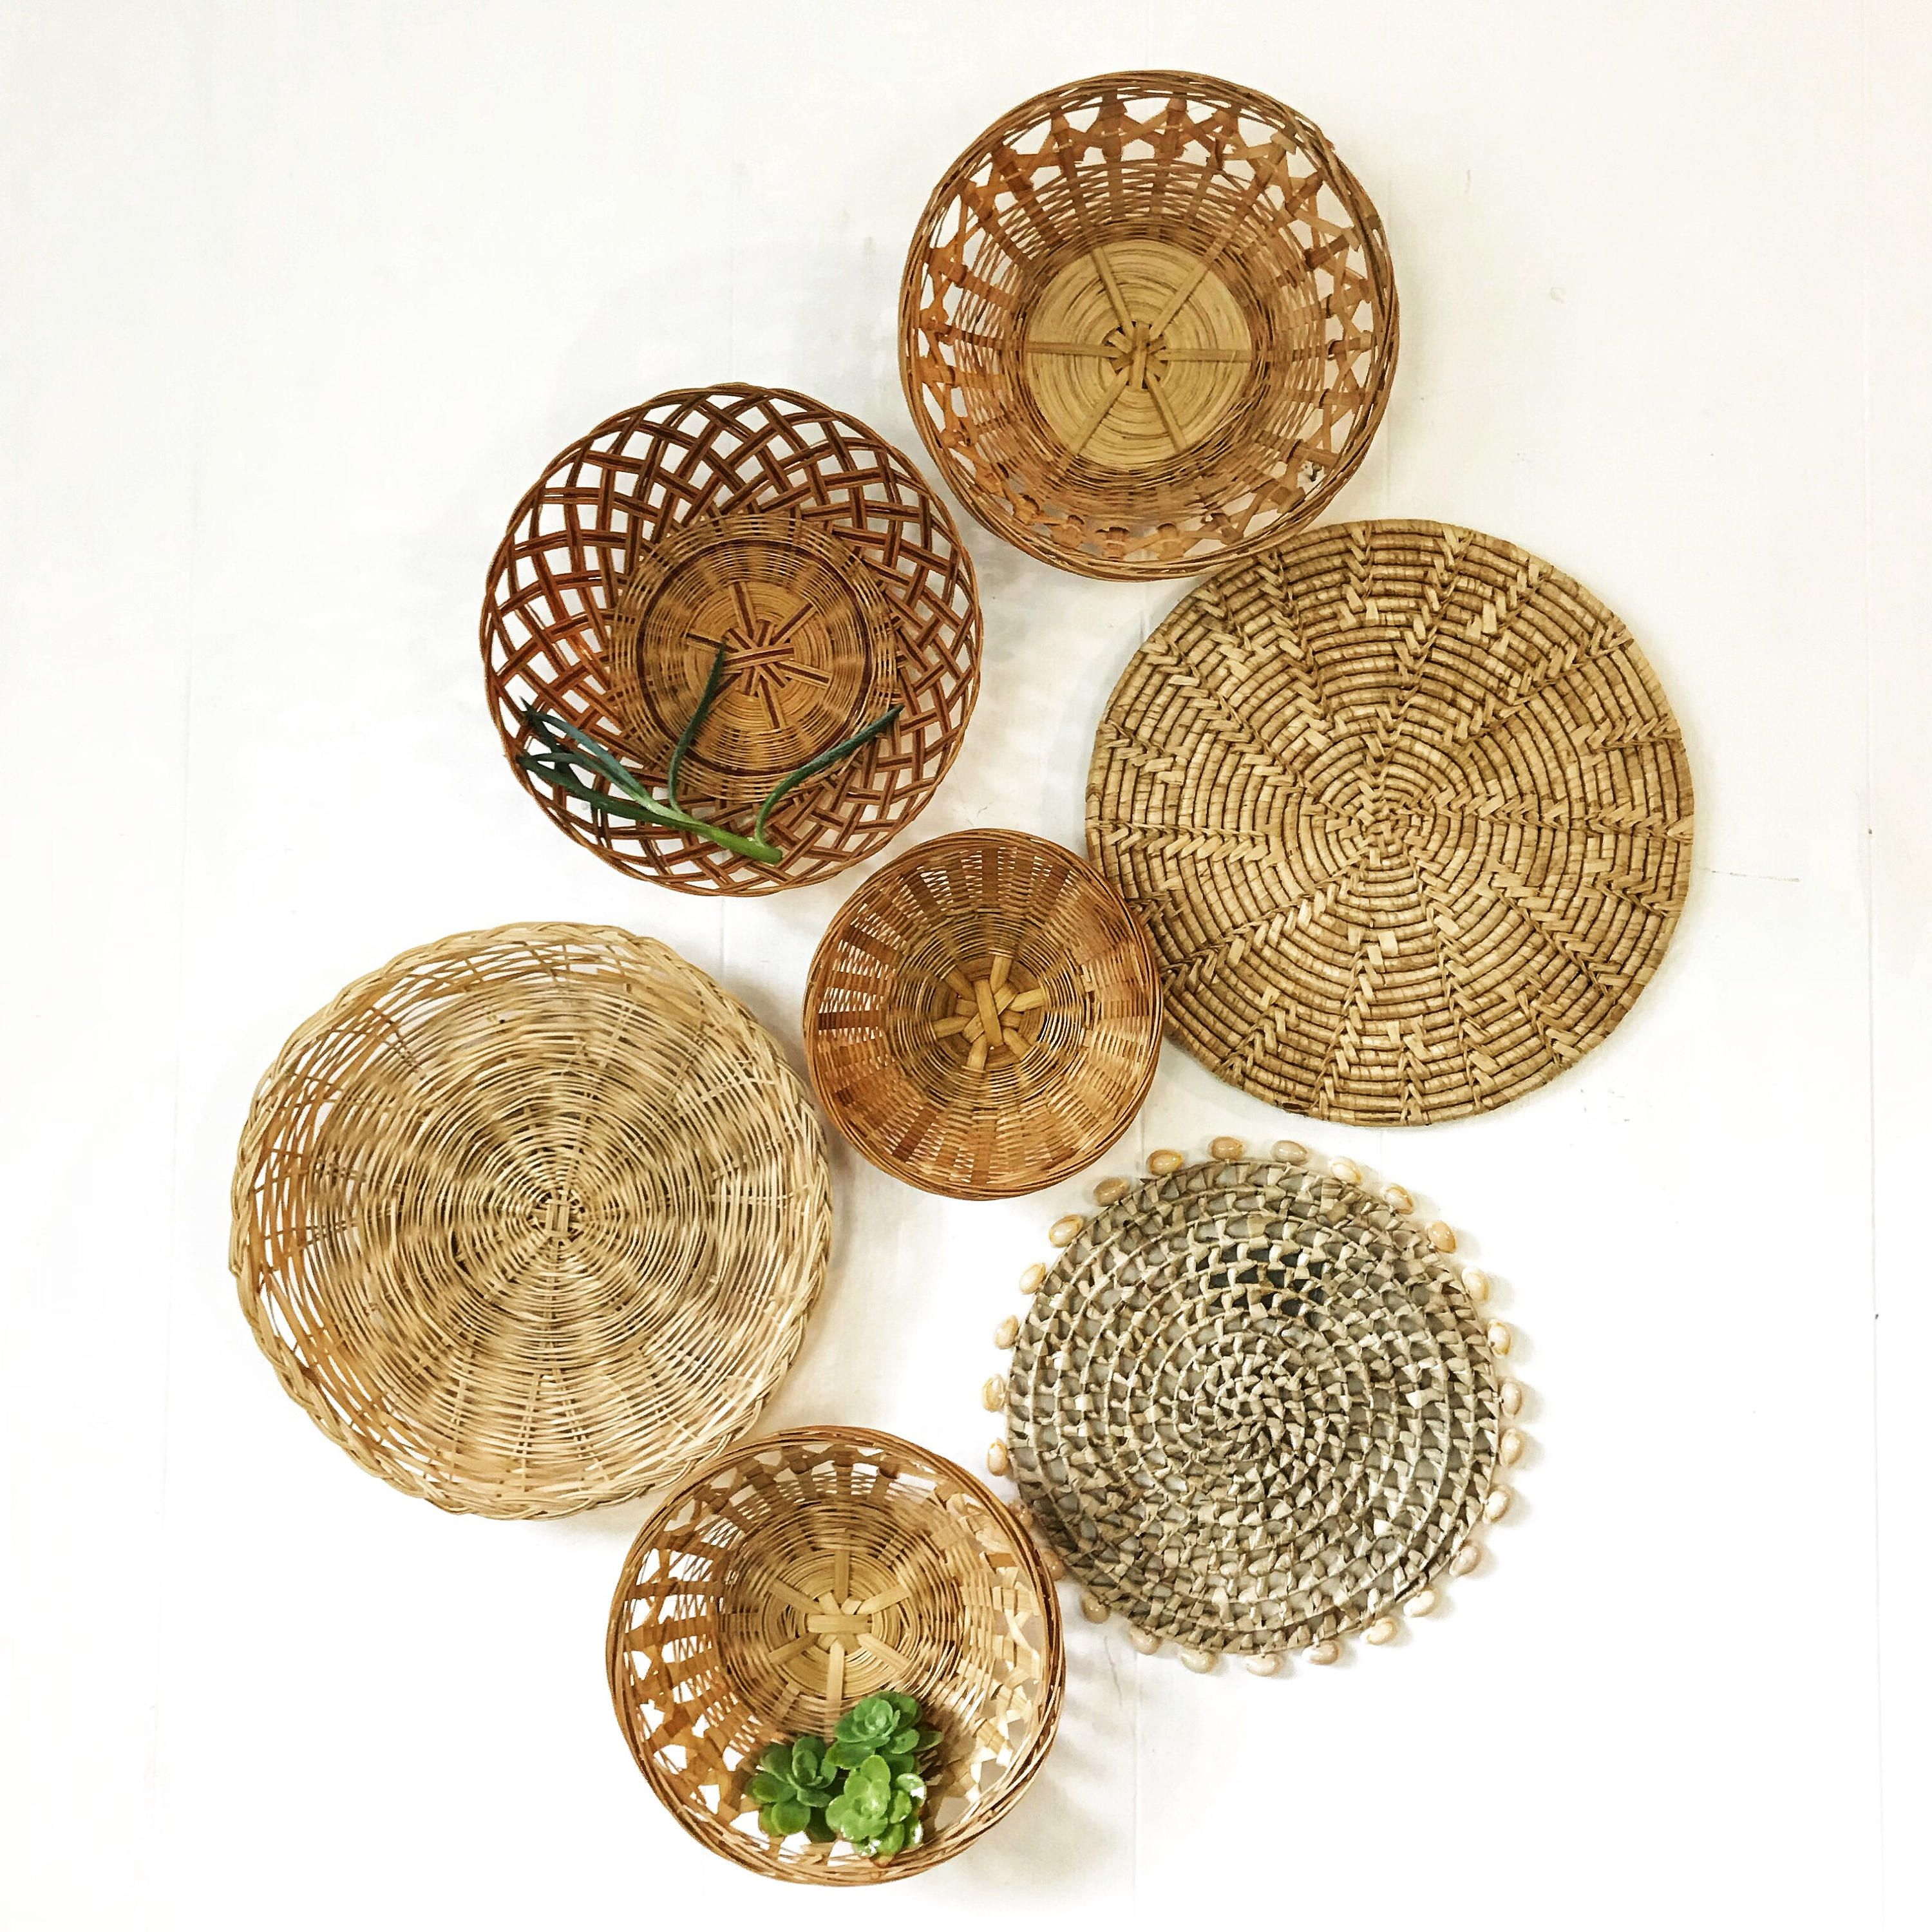 Rattan Wall Plates For Home Decoration From Vietnam View Wall Plate Rattan Eco Farmie Product Details From Eco Farmie Company Limited On Alibaba Com